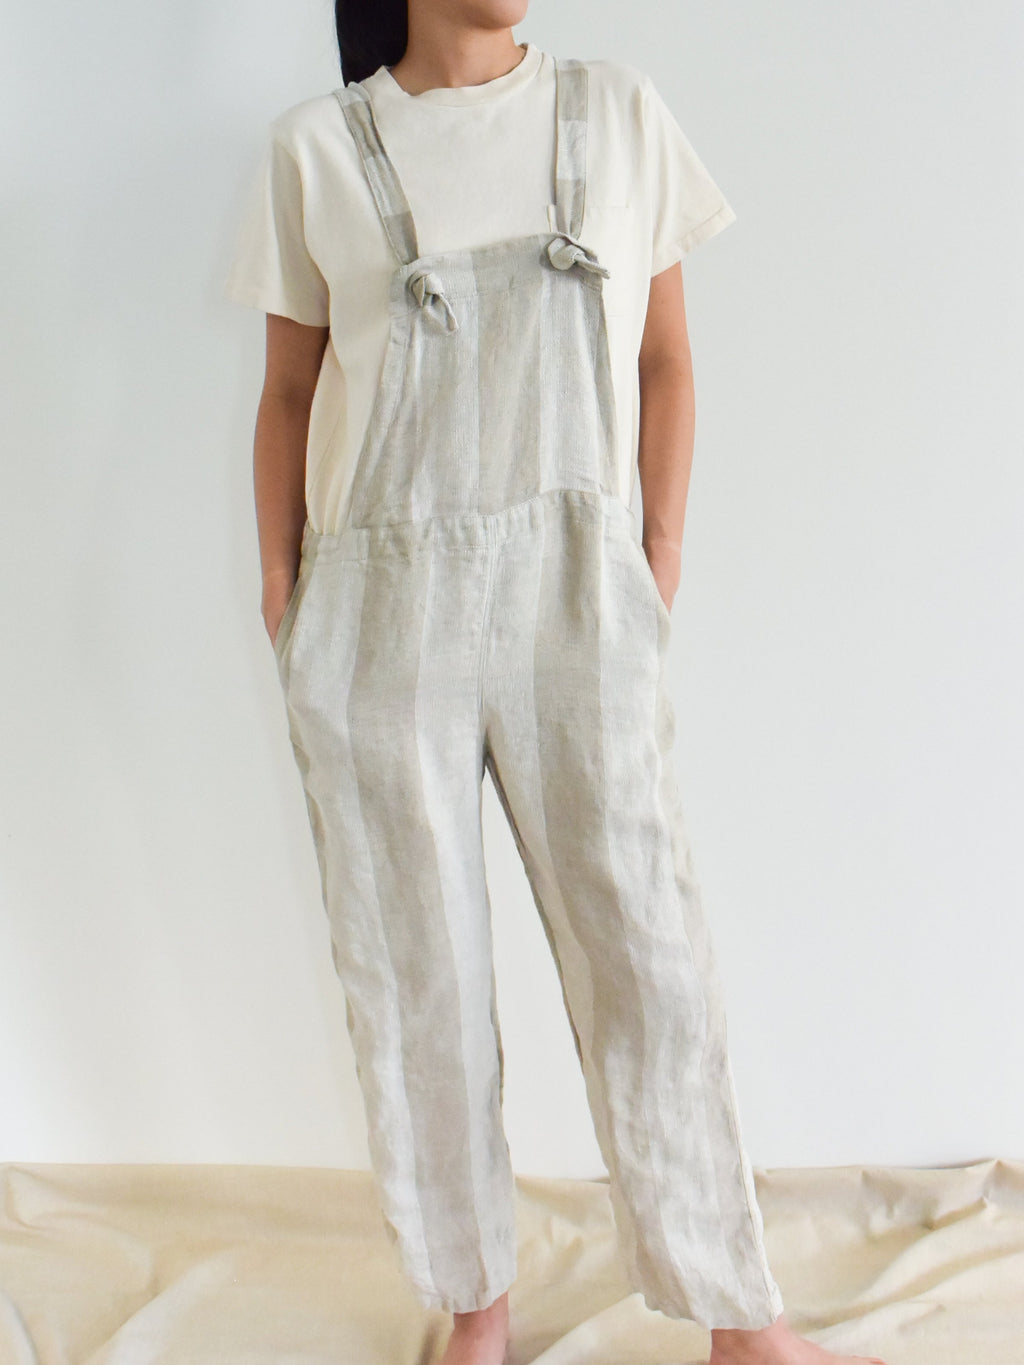 Namu Shop - Ichi Antiquites Striped Linen Overalls